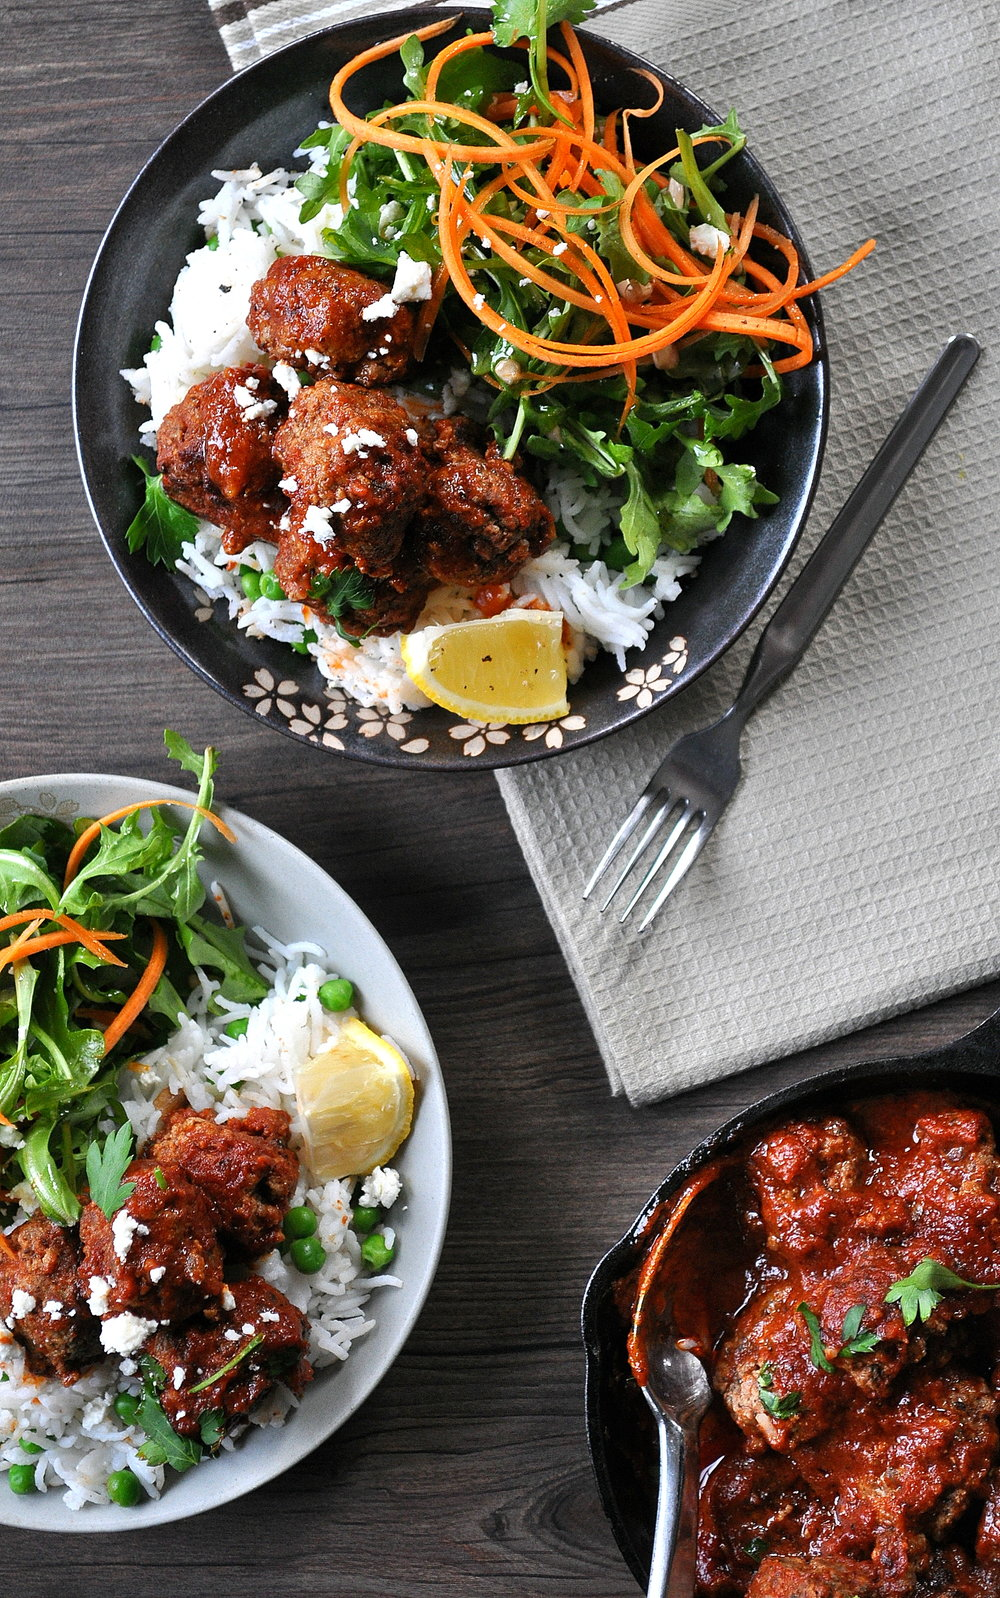 Mini Ricotta Meatballs over Lemon Rice and Peas